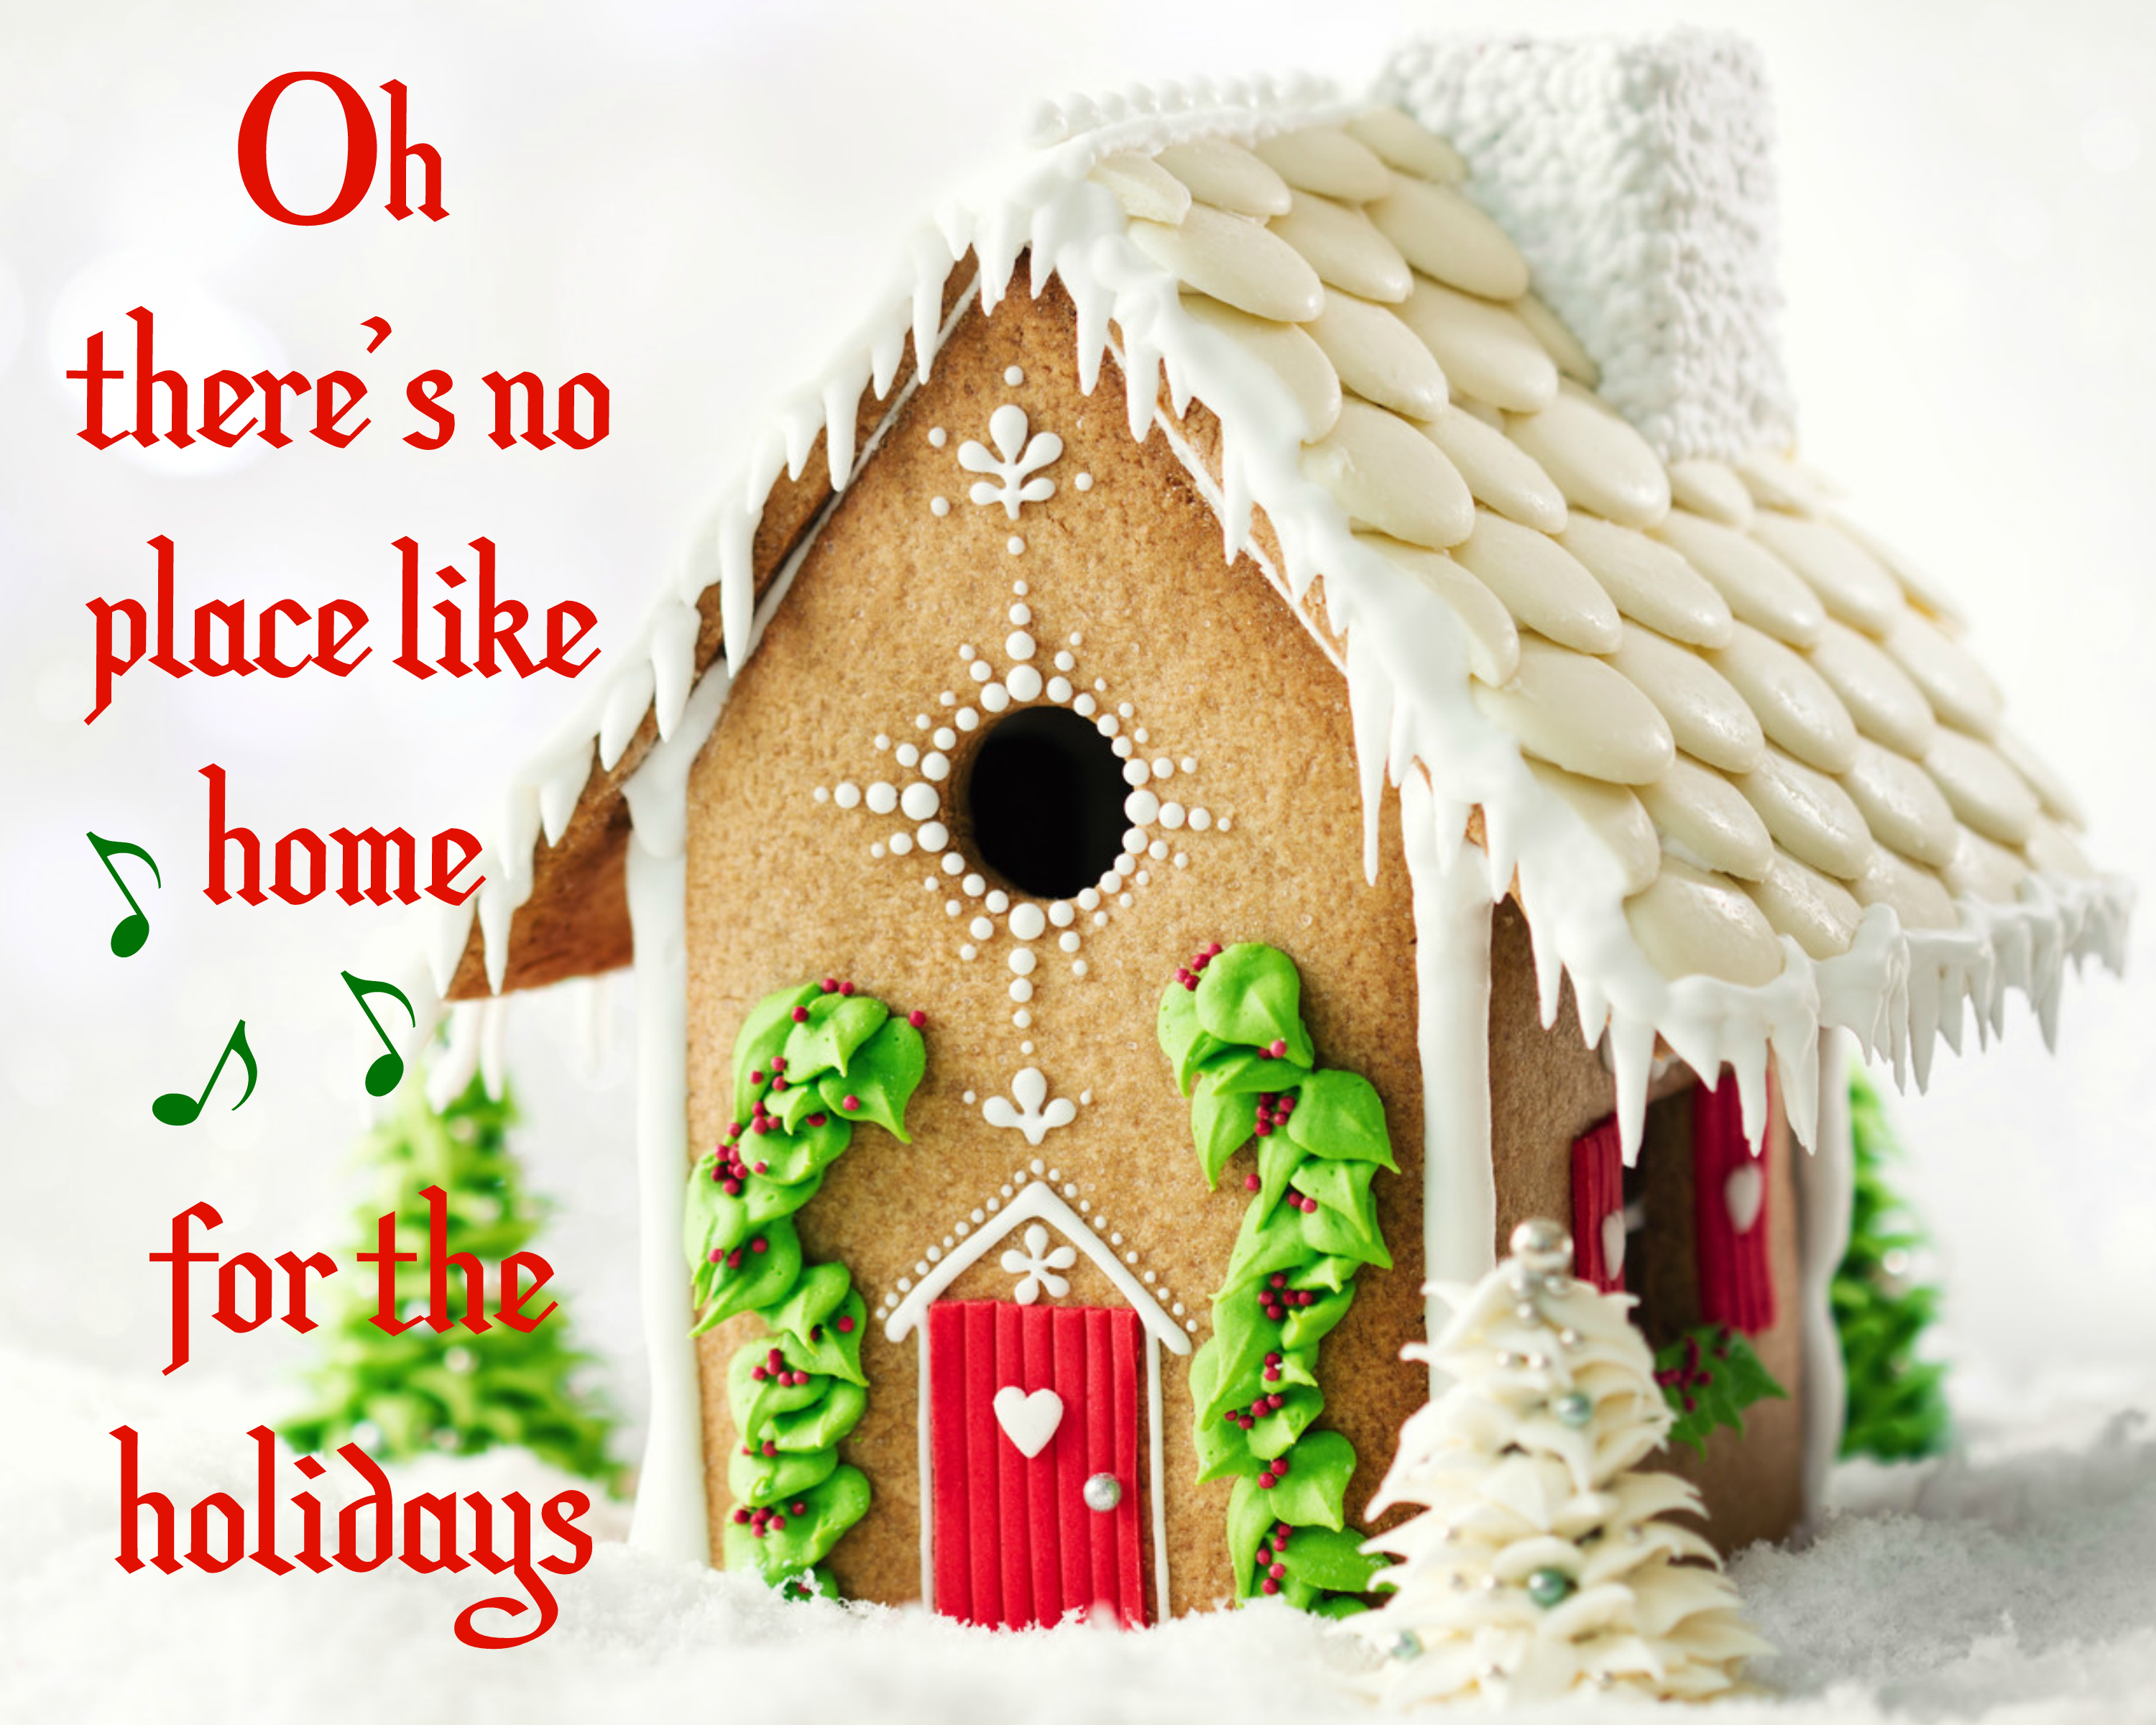 No-place-like-home-for-holidays-christma